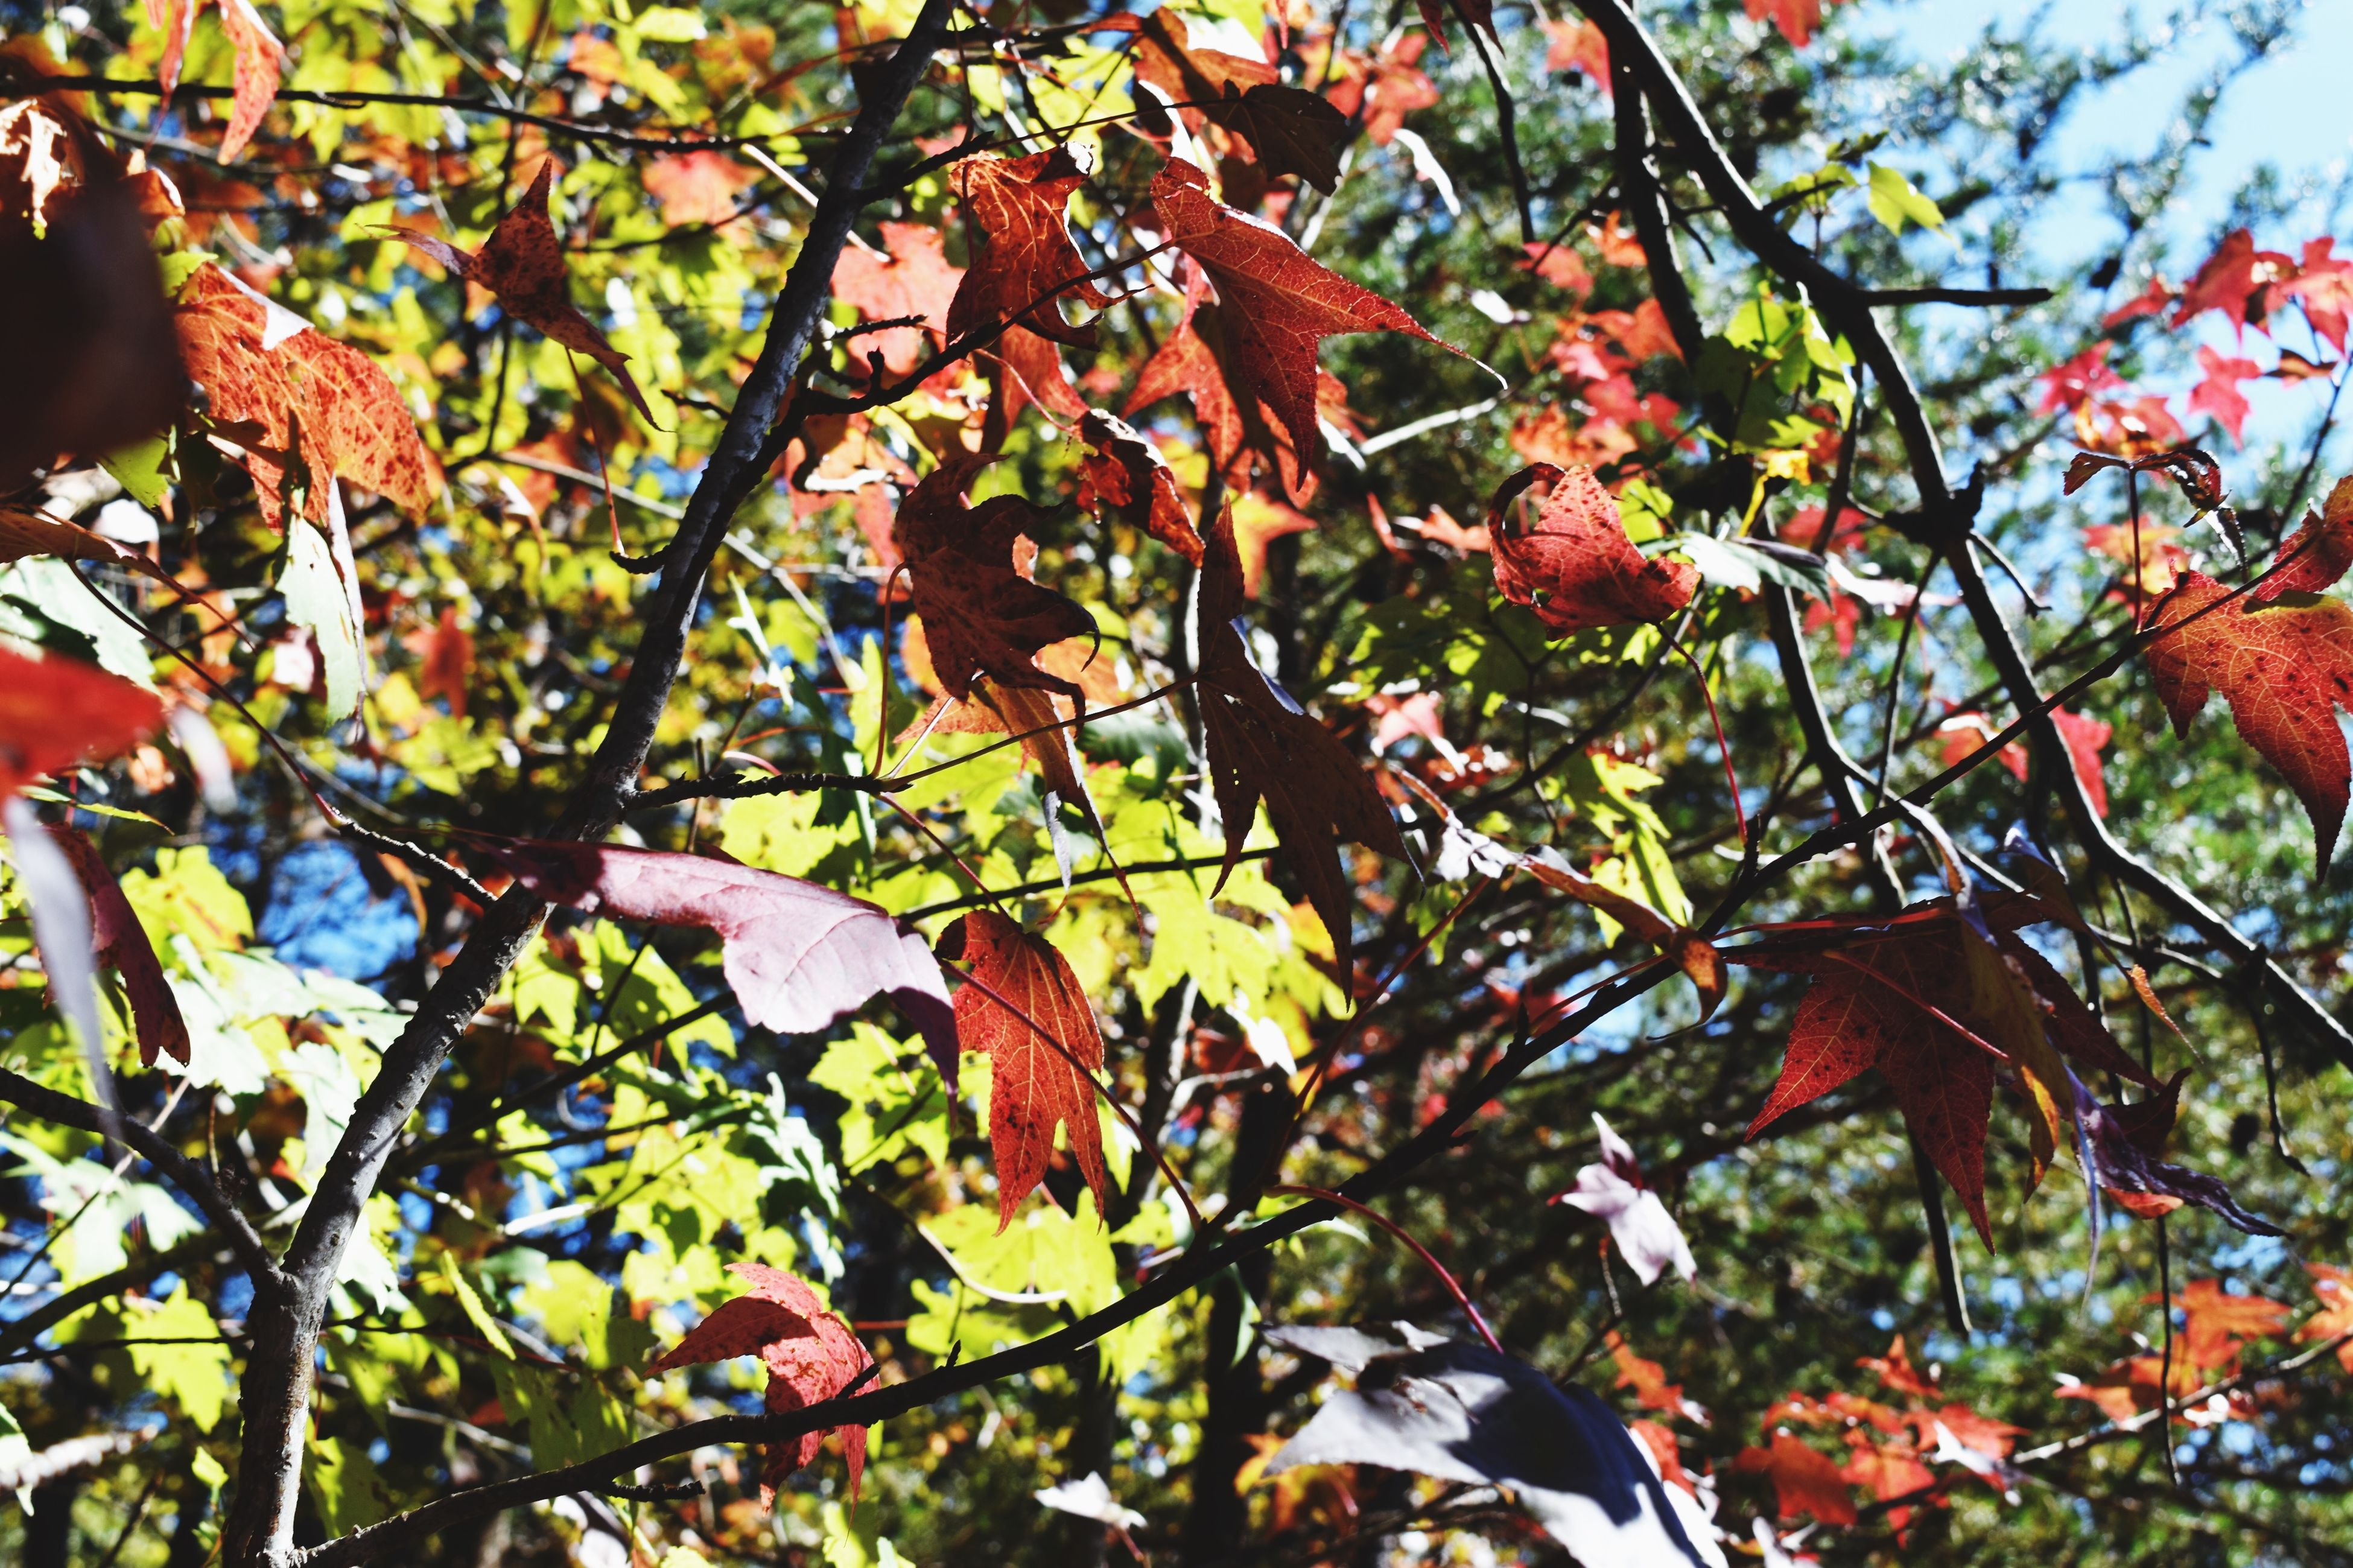 branch, tree, leaf, low angle view, growth, autumn, nature, change, beauty in nature, season, day, red, tranquility, outdoors, close-up, full frame, leaves, focus on foreground, no people, twig